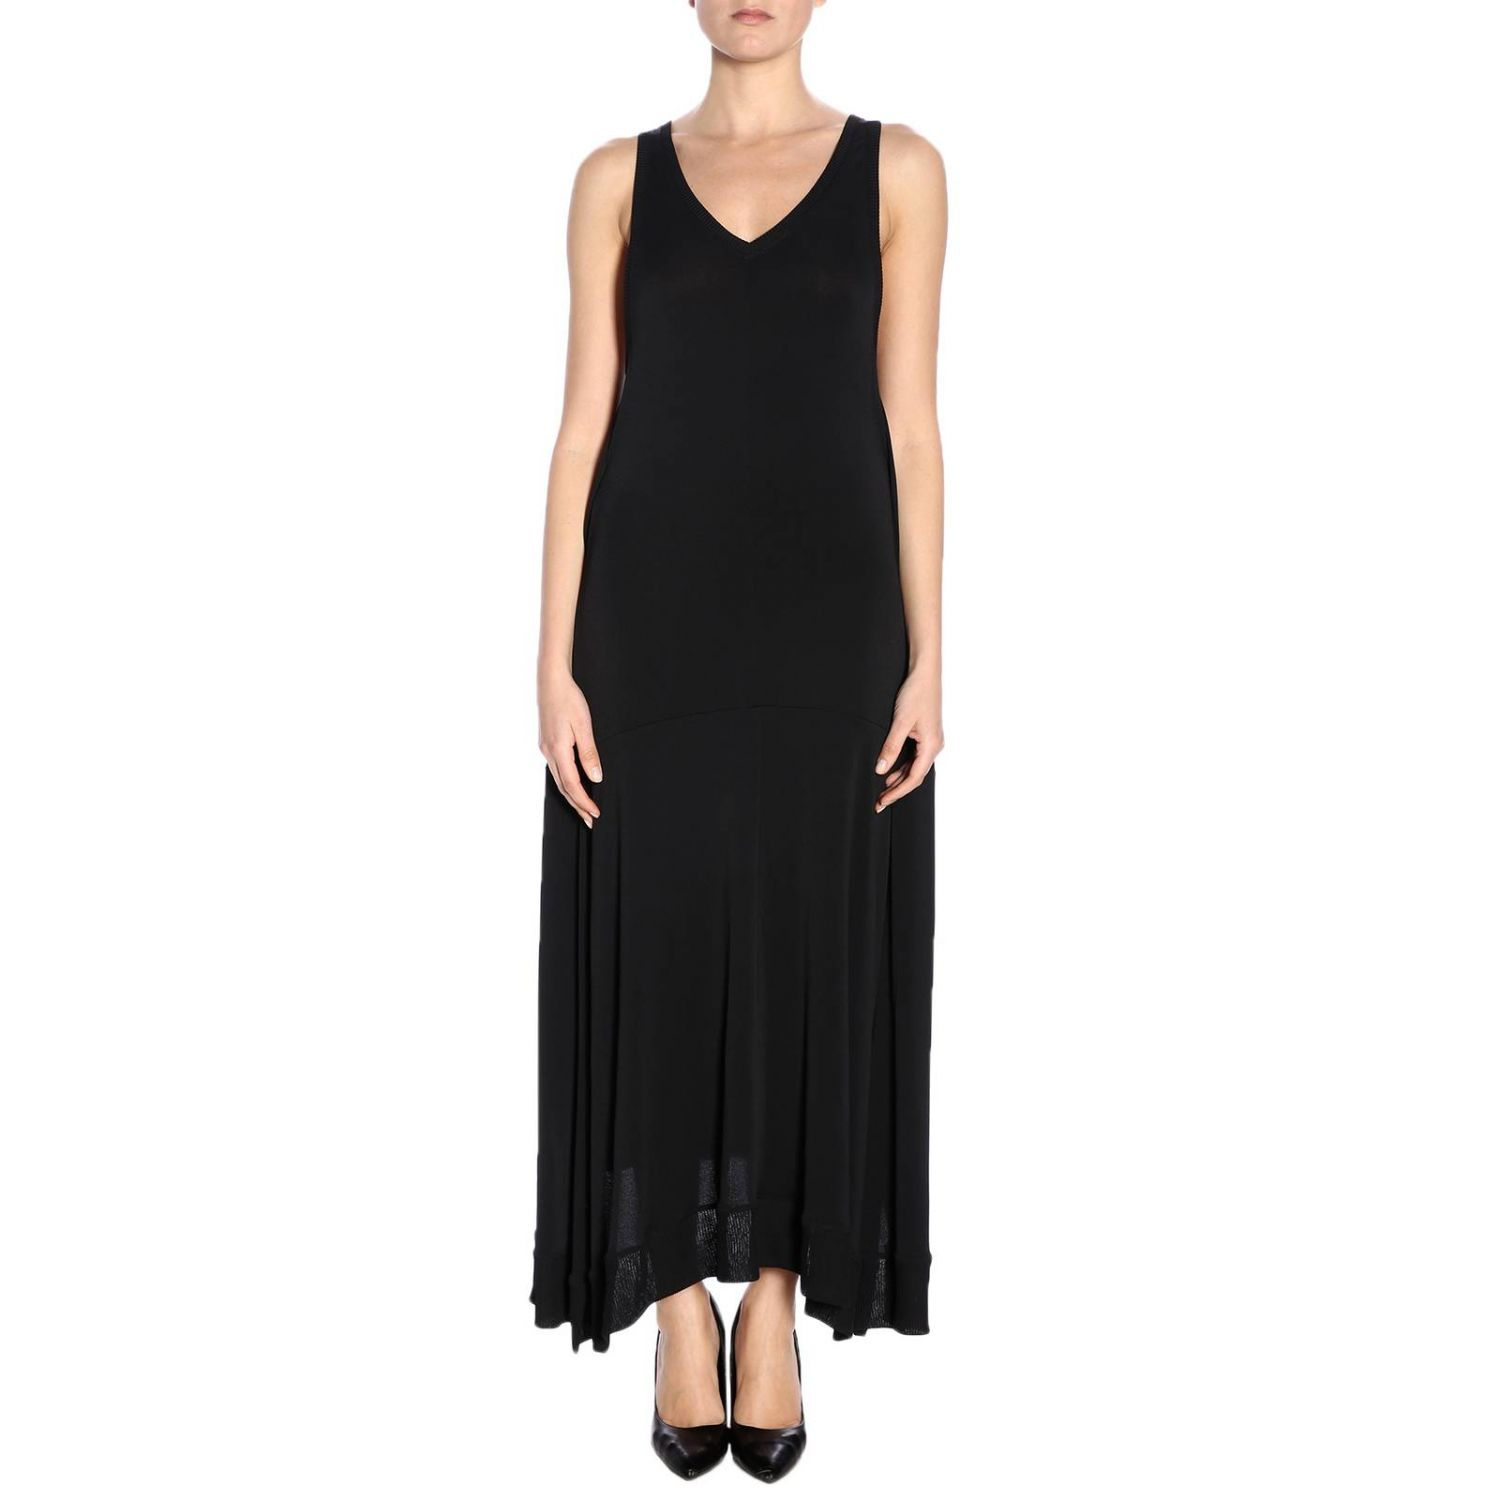 Dress women Paco Rabanne black 1